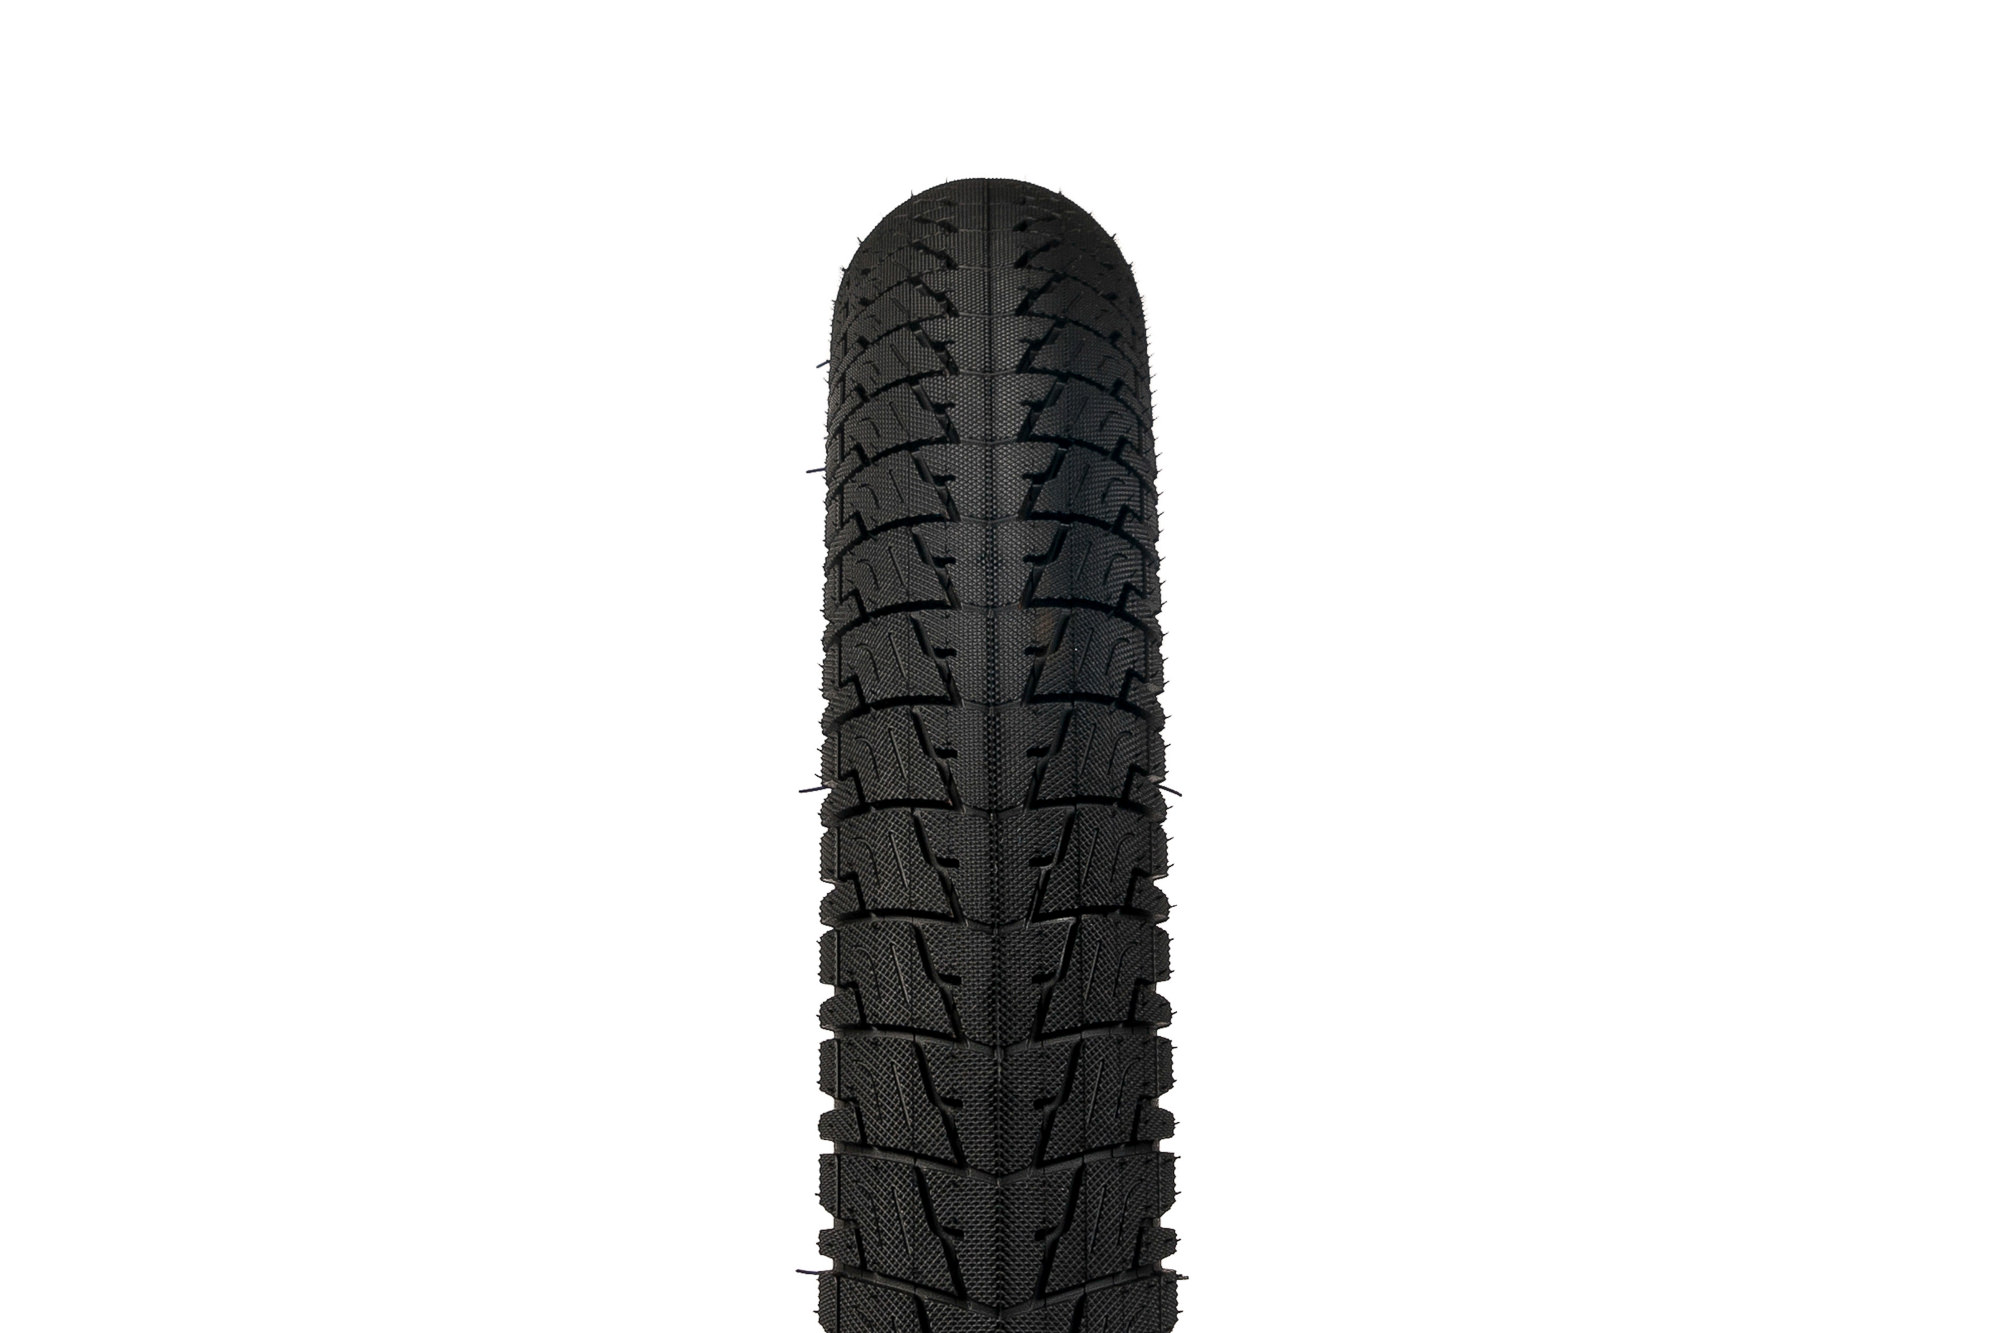 SaltPlus_Pitch_Mid_tire_black_02